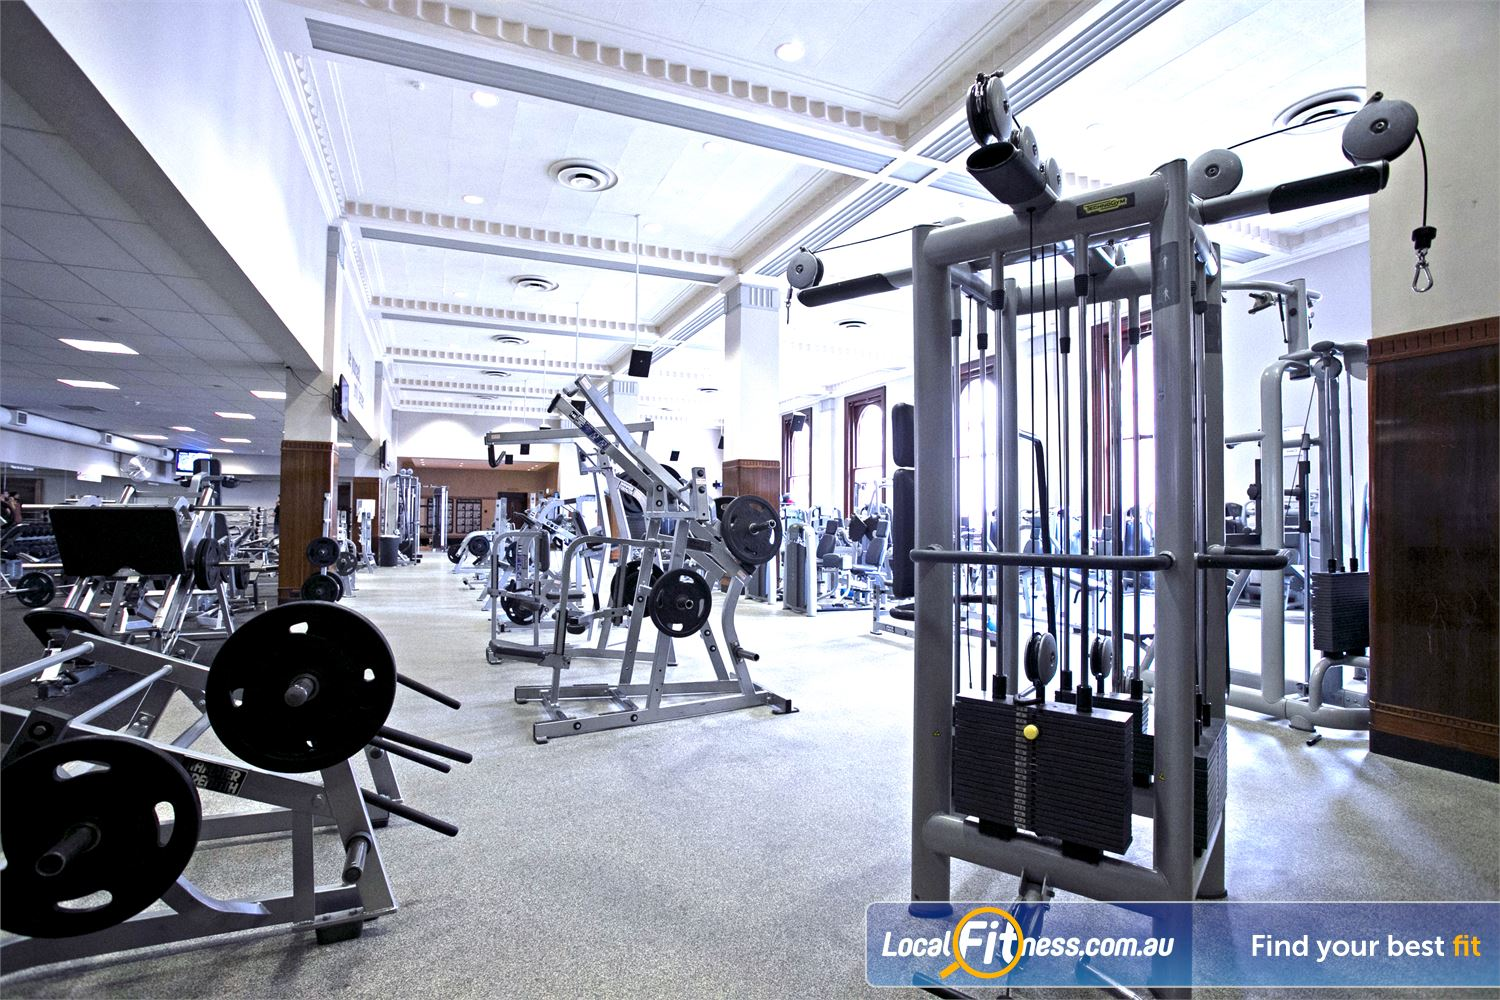 Goodlife Health Clubs Adelaide City Adelaide A comprehensive range of plate loading and pin-loading machines for strength training.